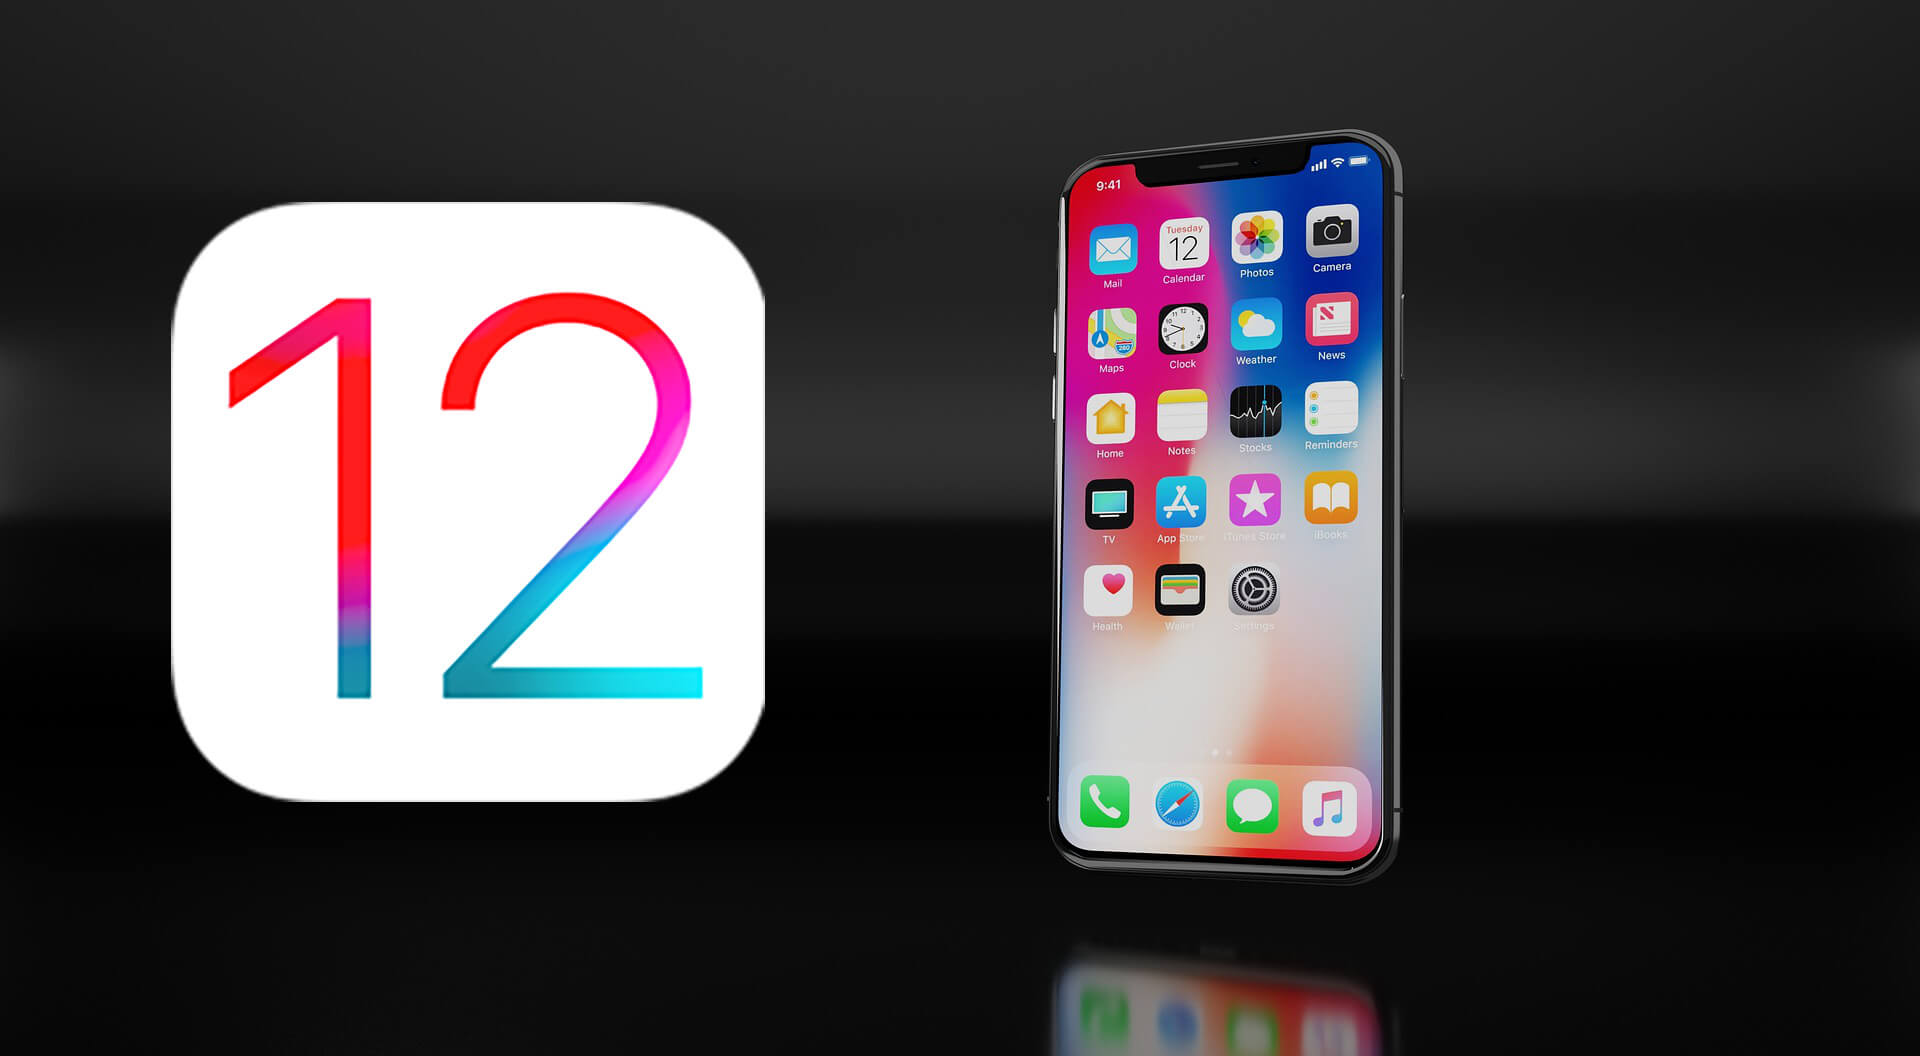 iOS 12 Hidden Features And Updates For iPhone/iPad